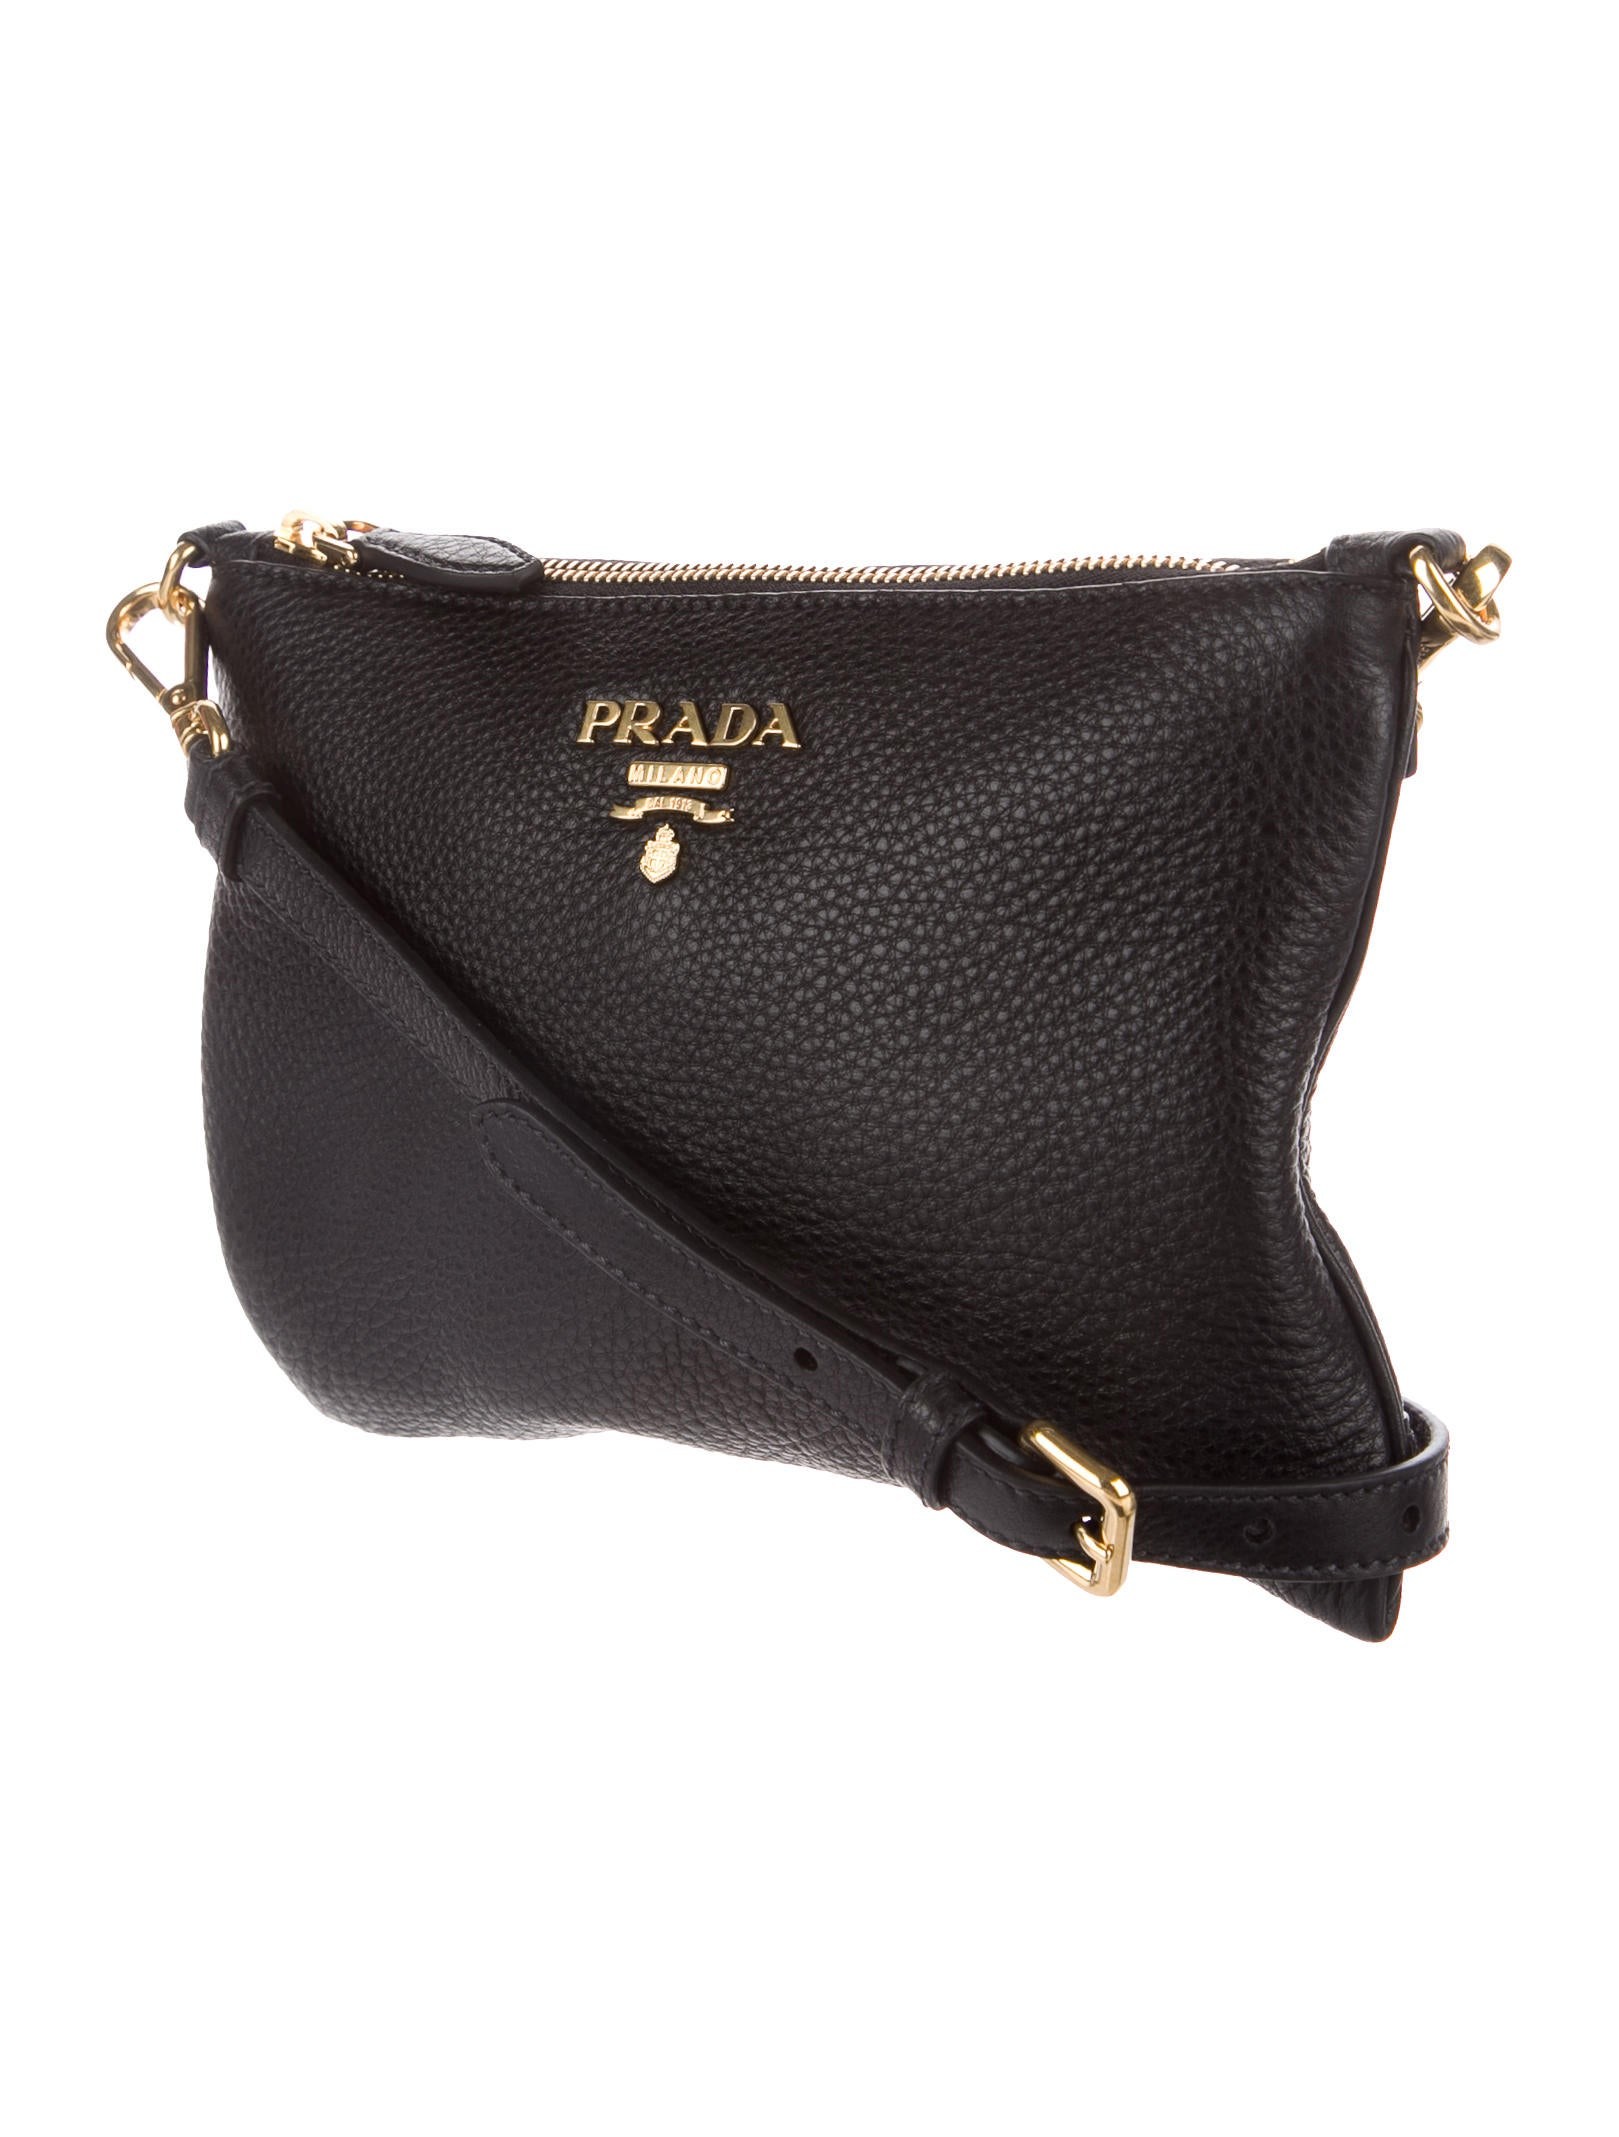 897335ac35e2 Prada Crossbody Bag 2017 | Stanford Center for Opportunity Policy in ...